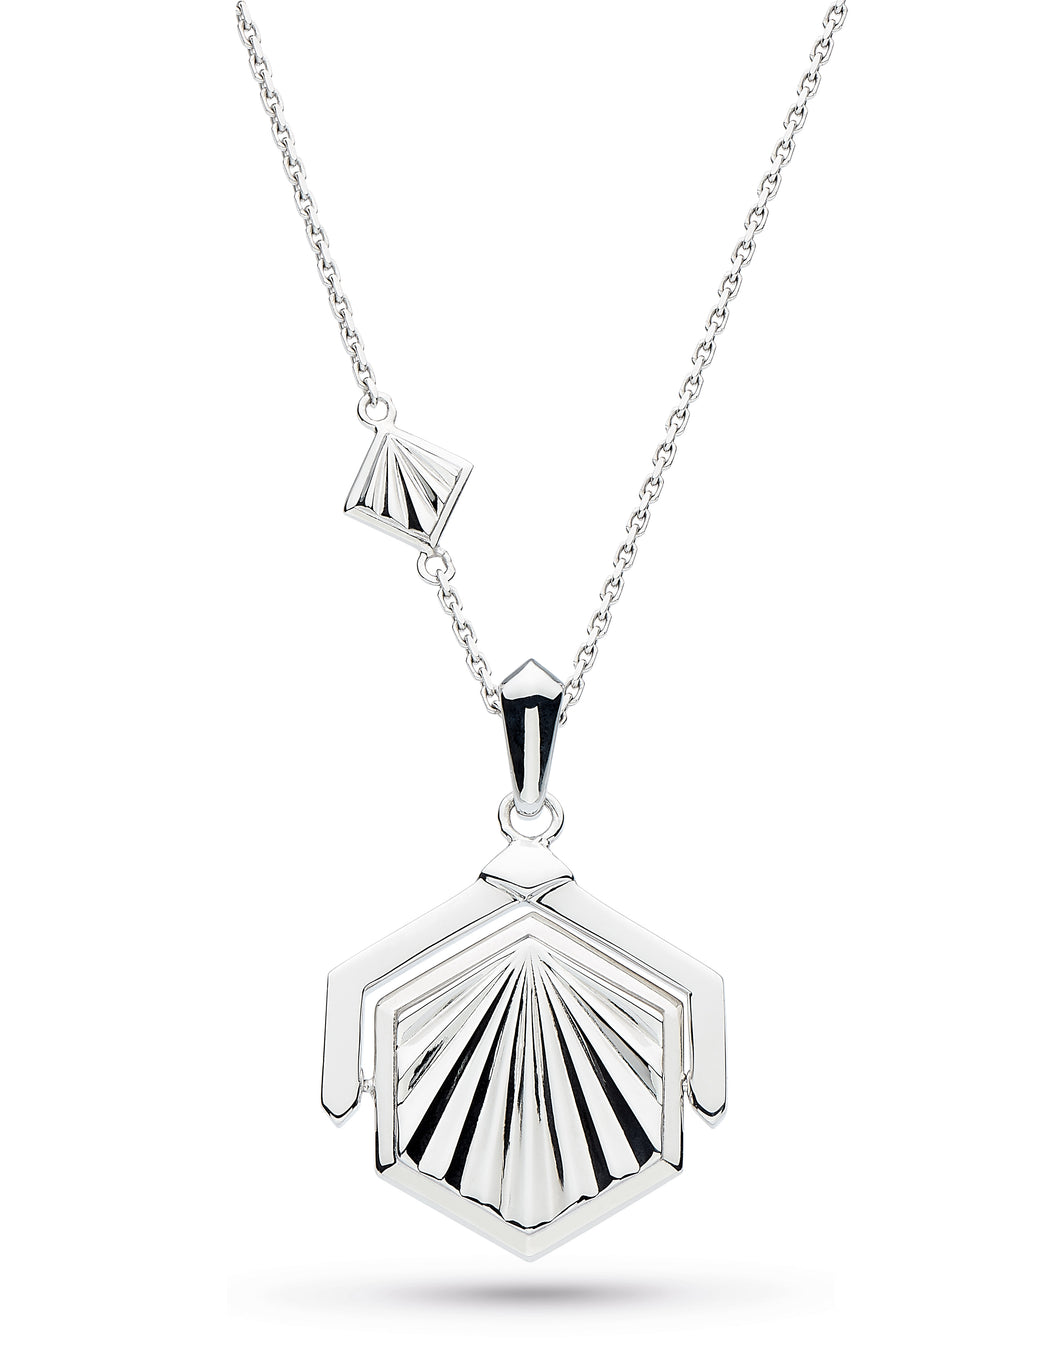 Empire Deco Hexagonal Spinner Necklace